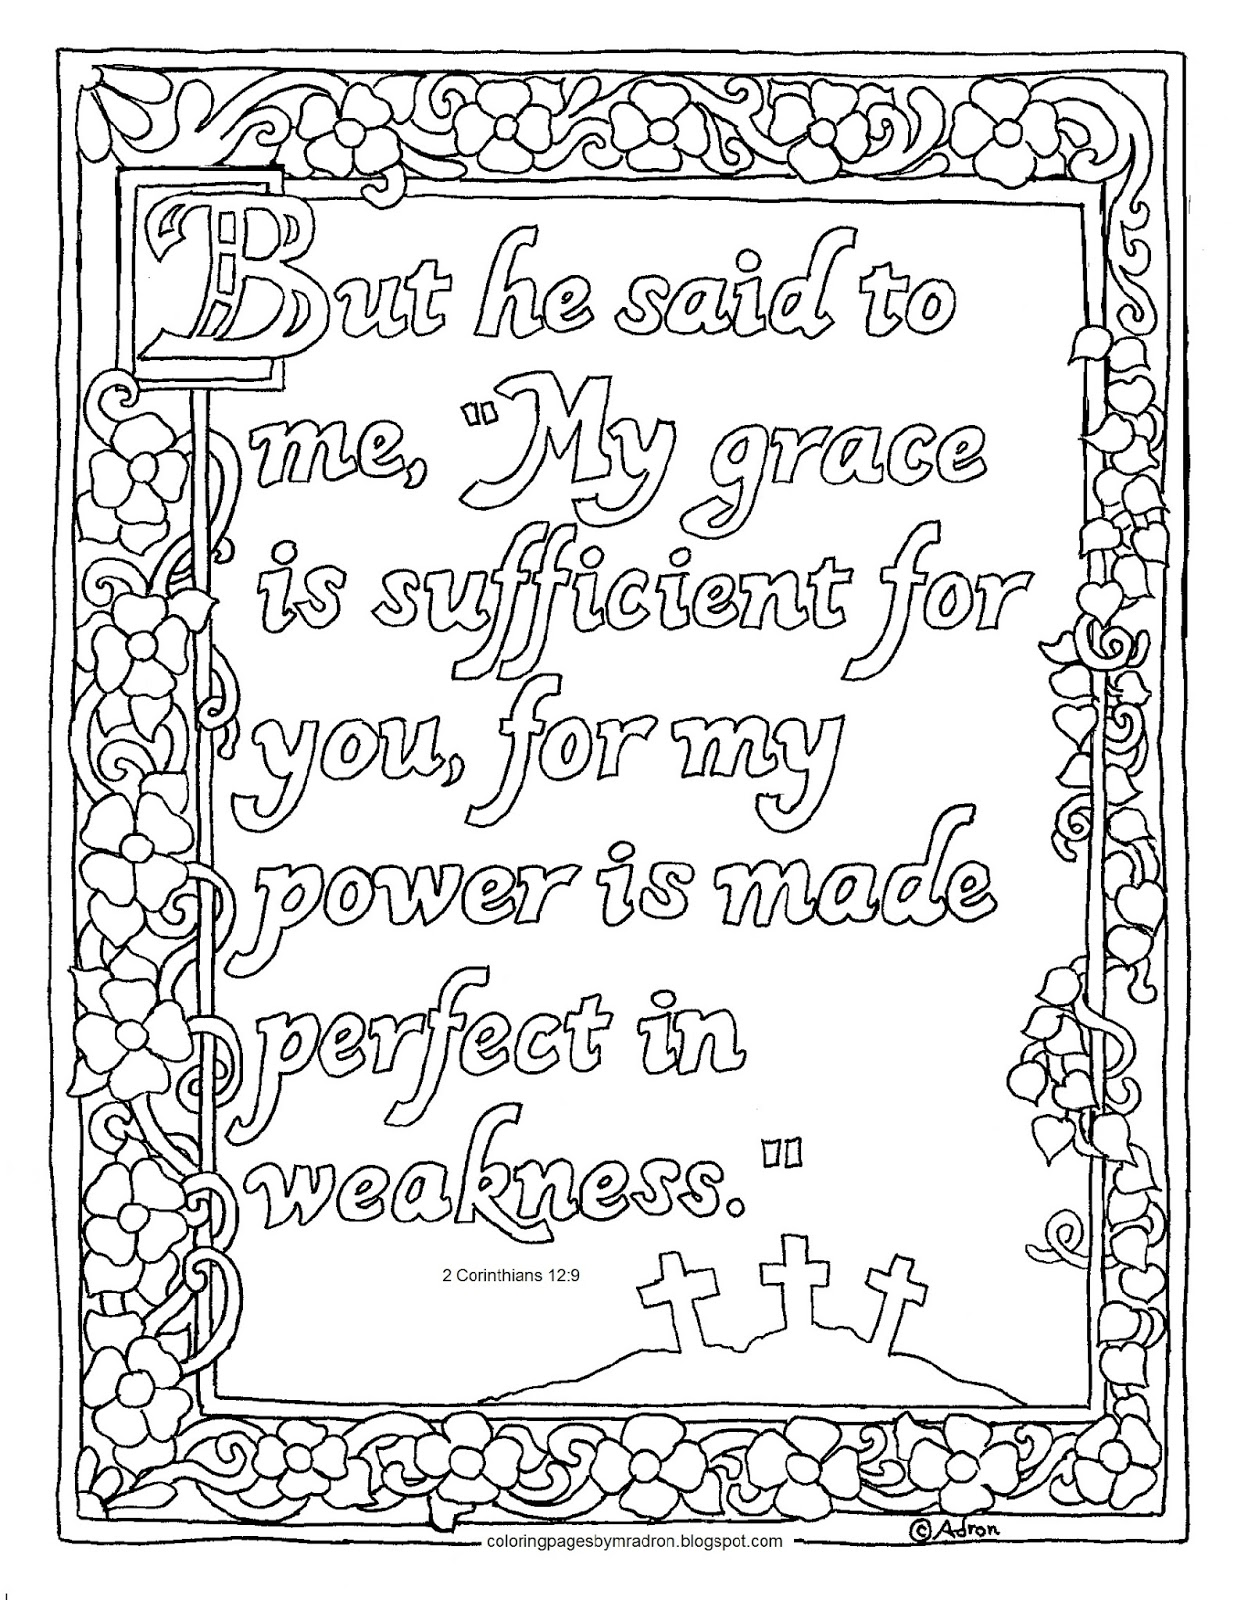 Coloring Pages For Kids By Mr Adron Printable My Grace Is Sufficent For You 2 Corinthians 12